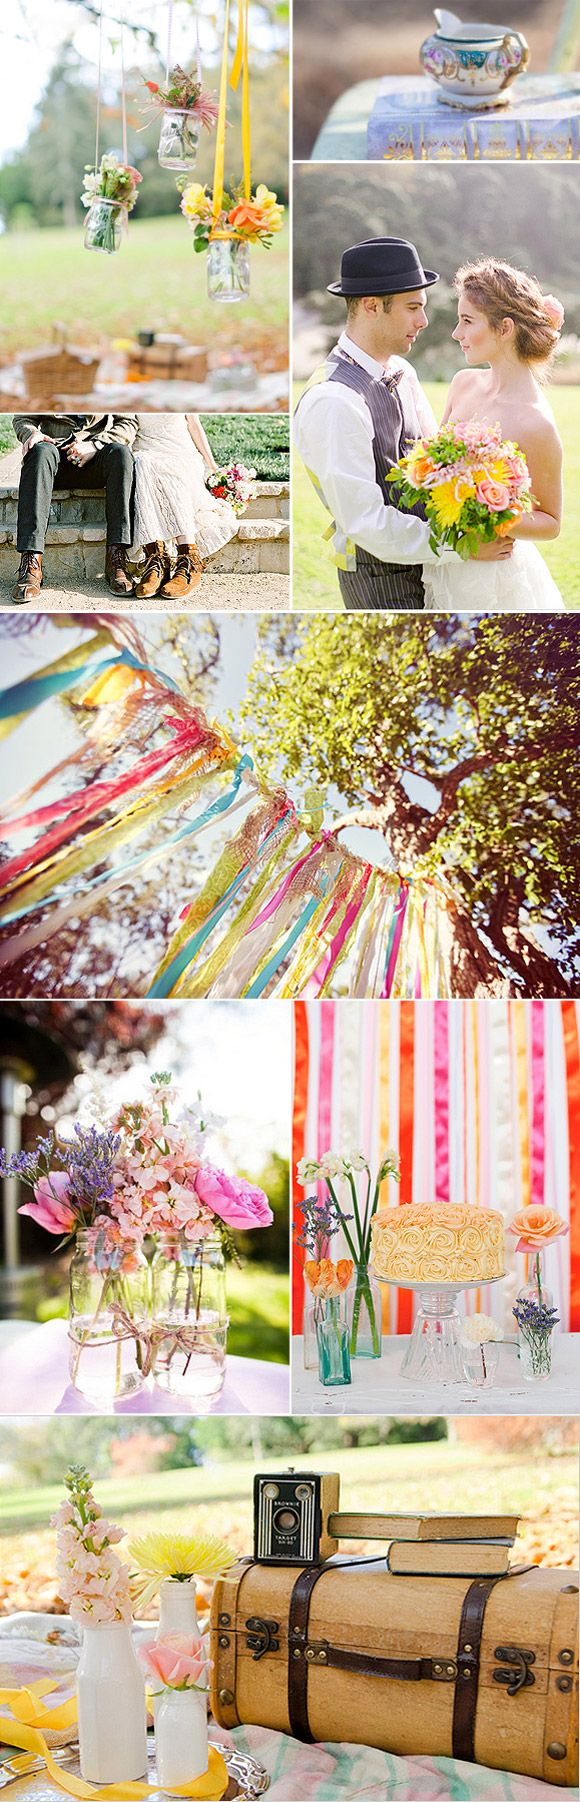 Ideas para decorar una boda estilo boho chic